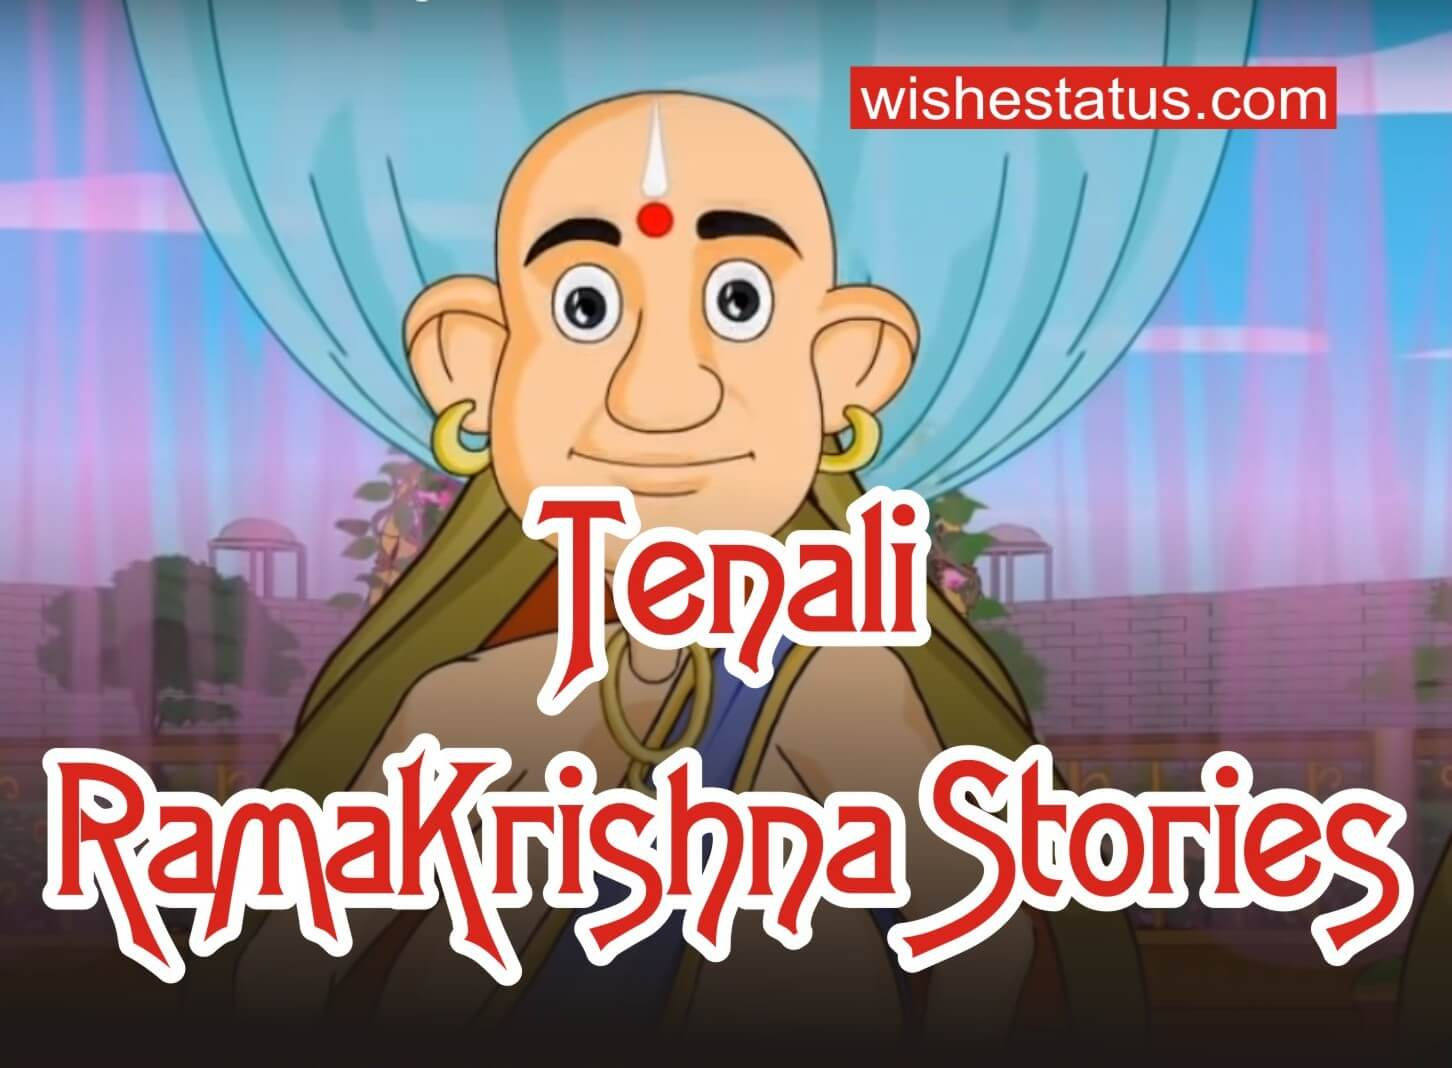 tenali-ramakrishna-stories